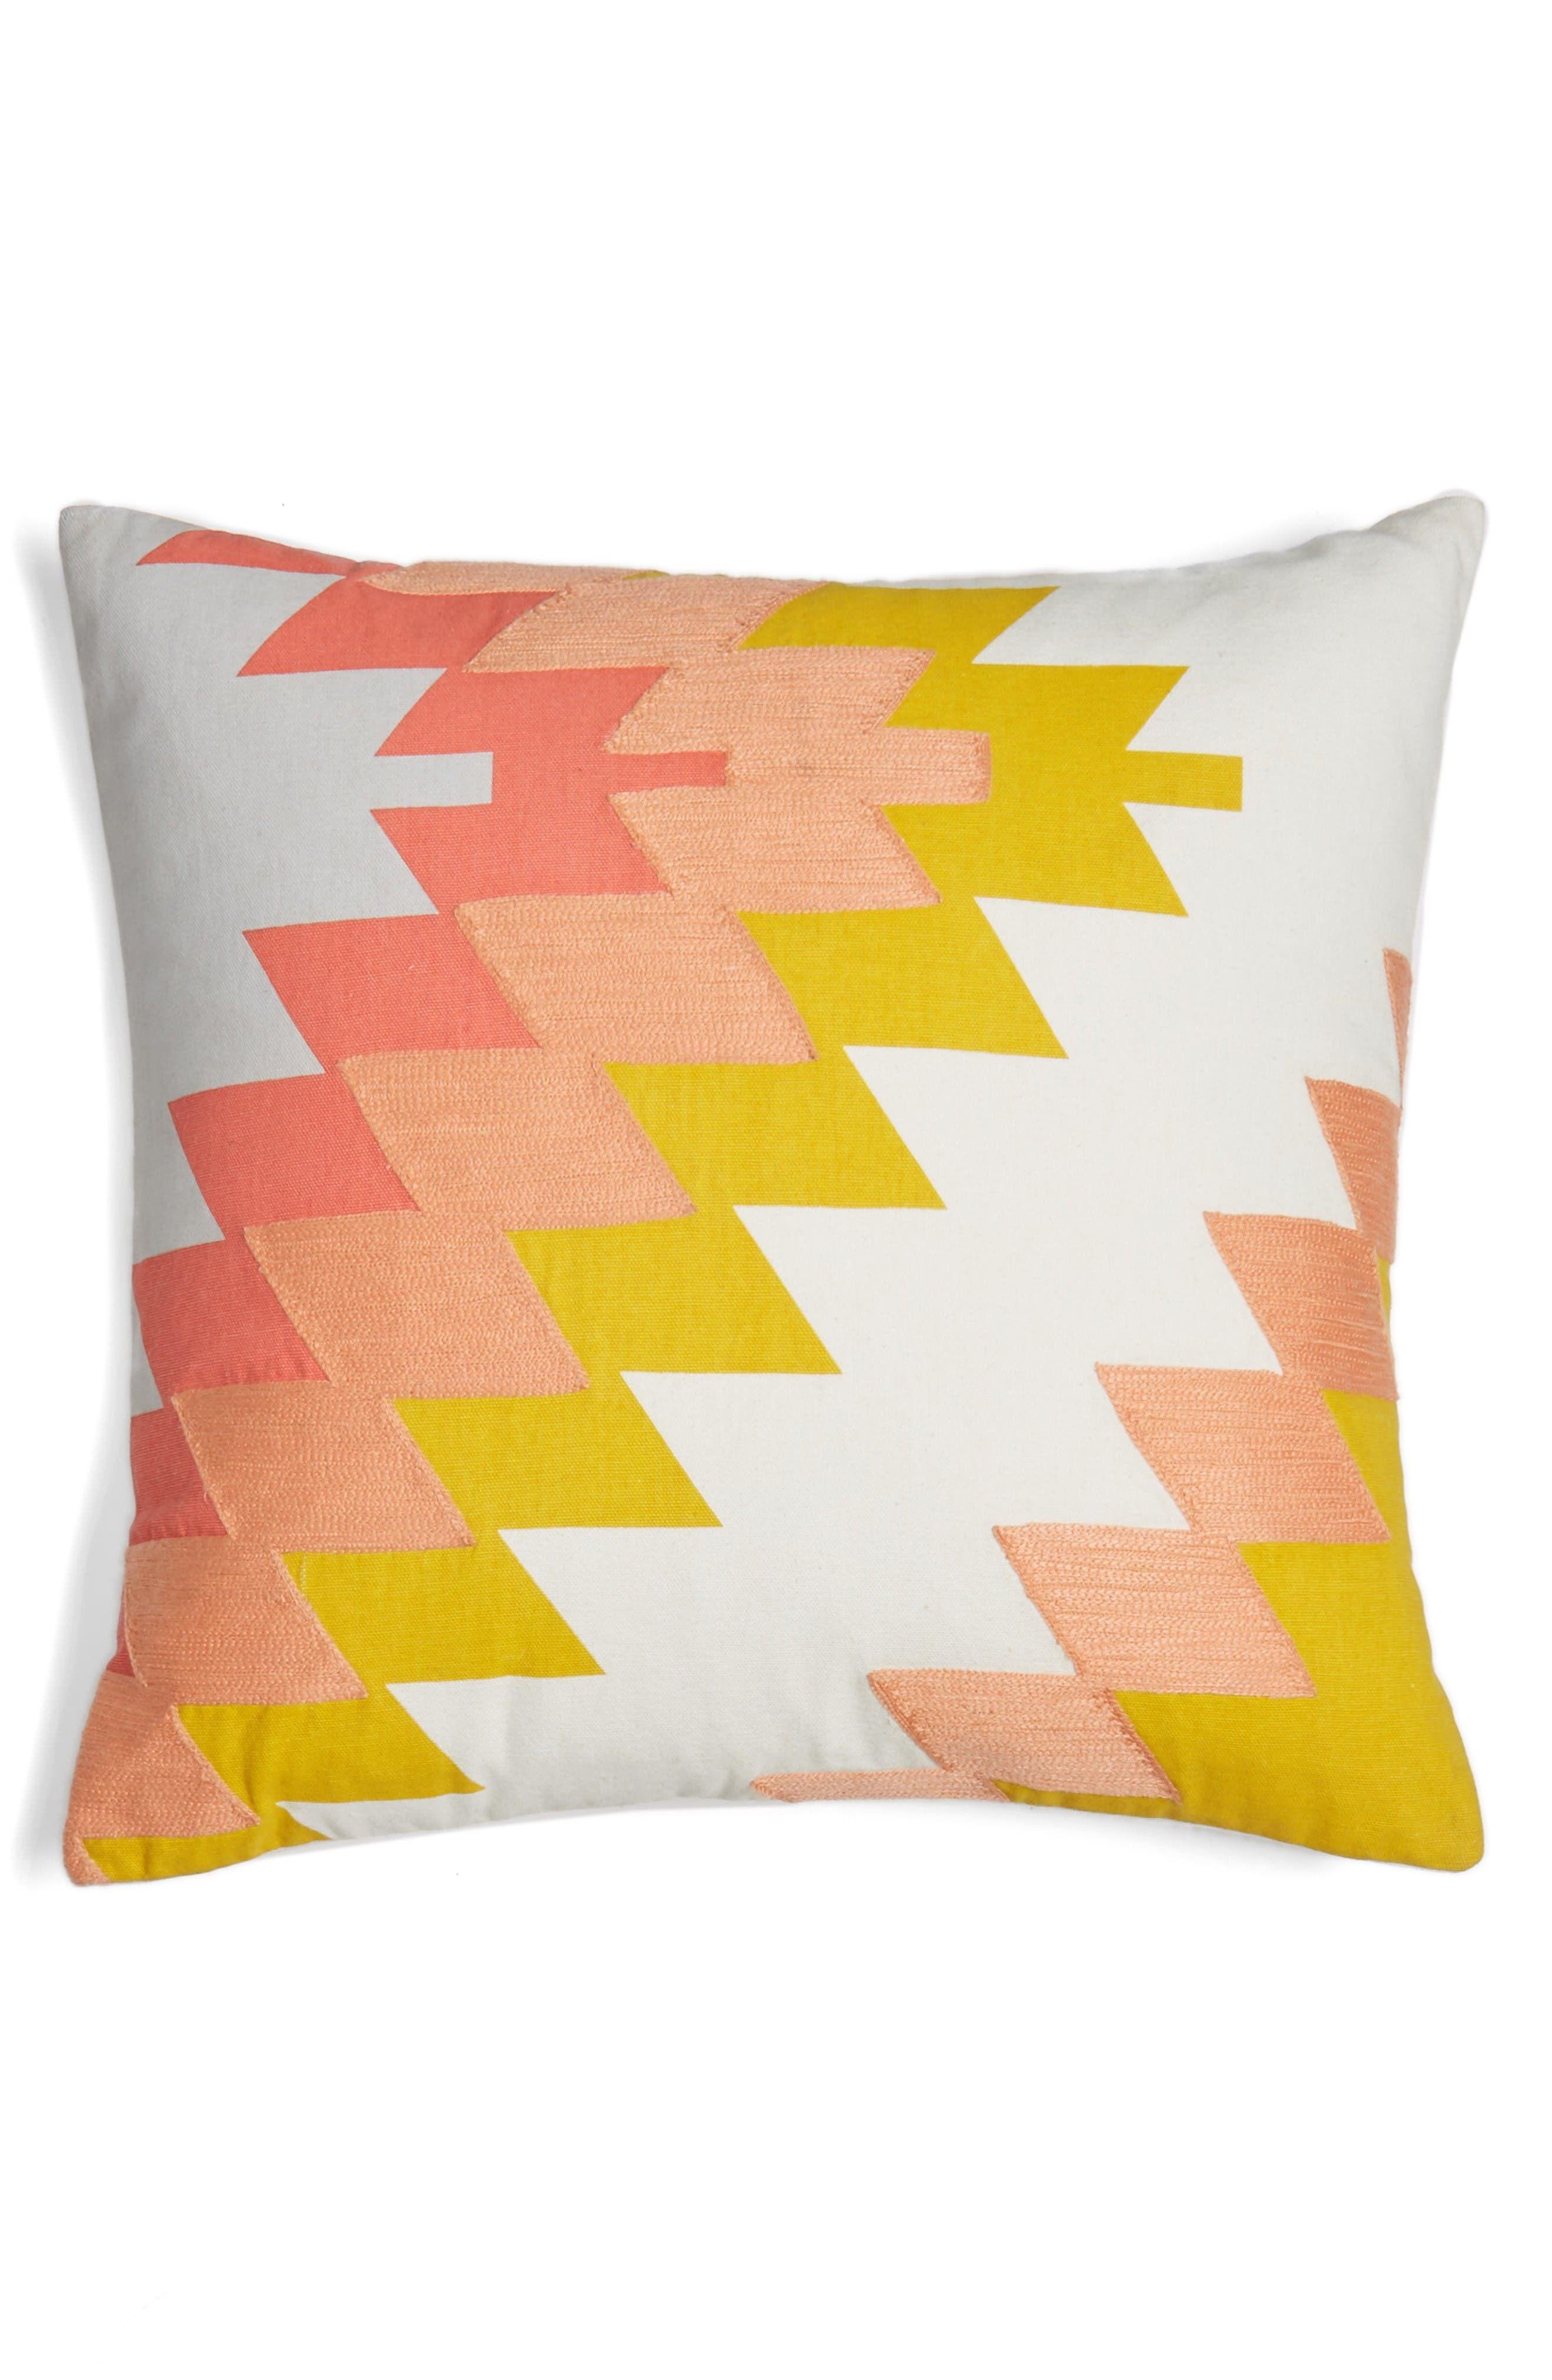 Main Image - Nordstrom at Home Kilm Graphic Accent Pillow